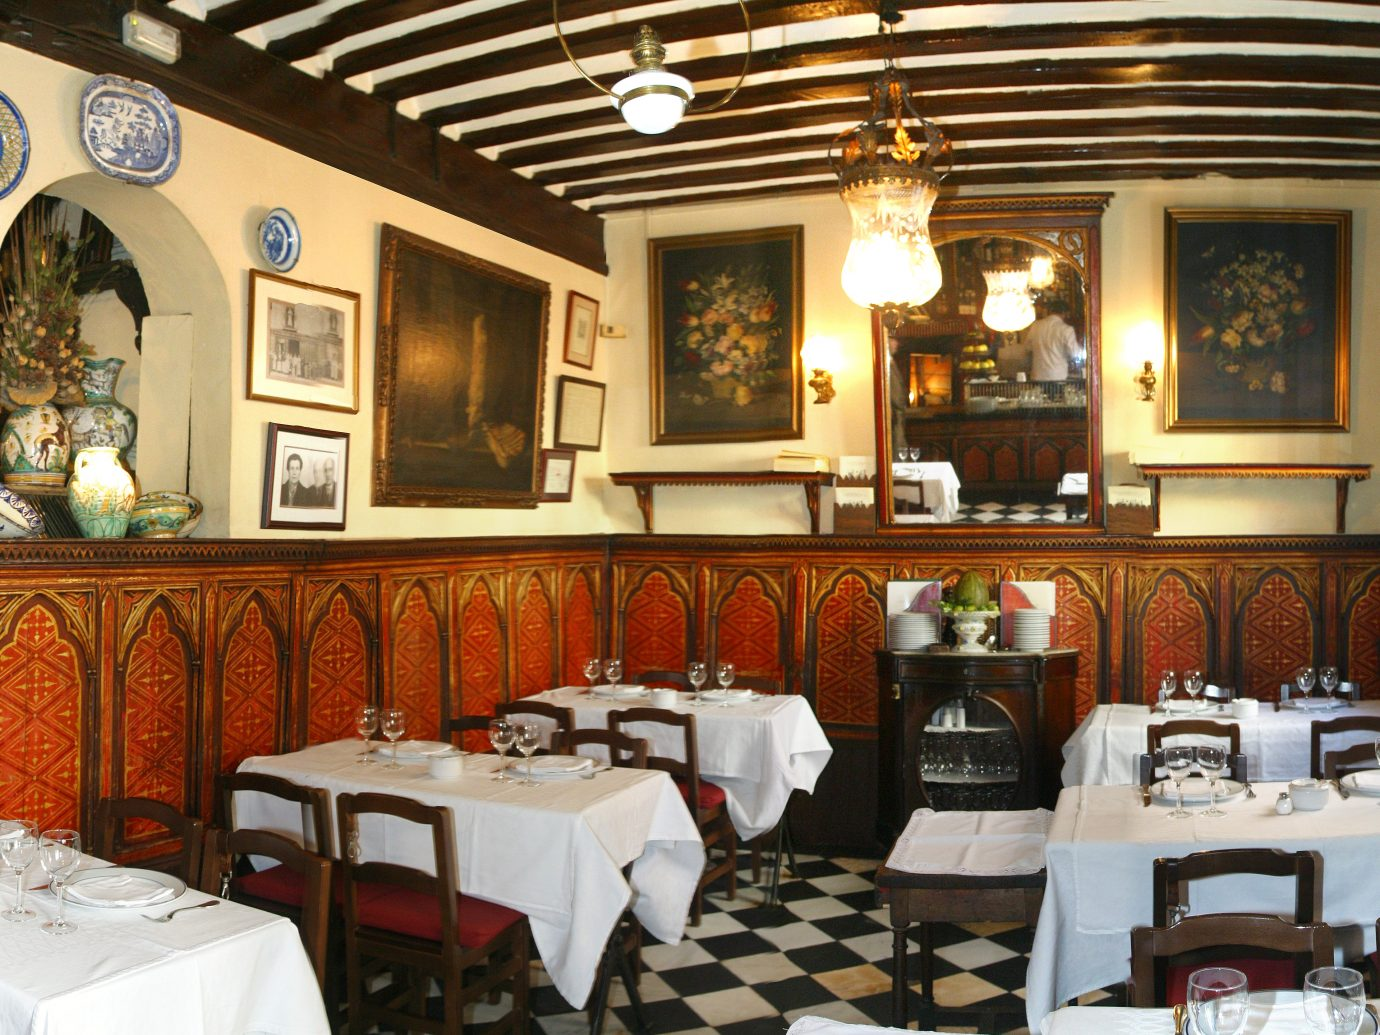 dining room at Botin restaurant